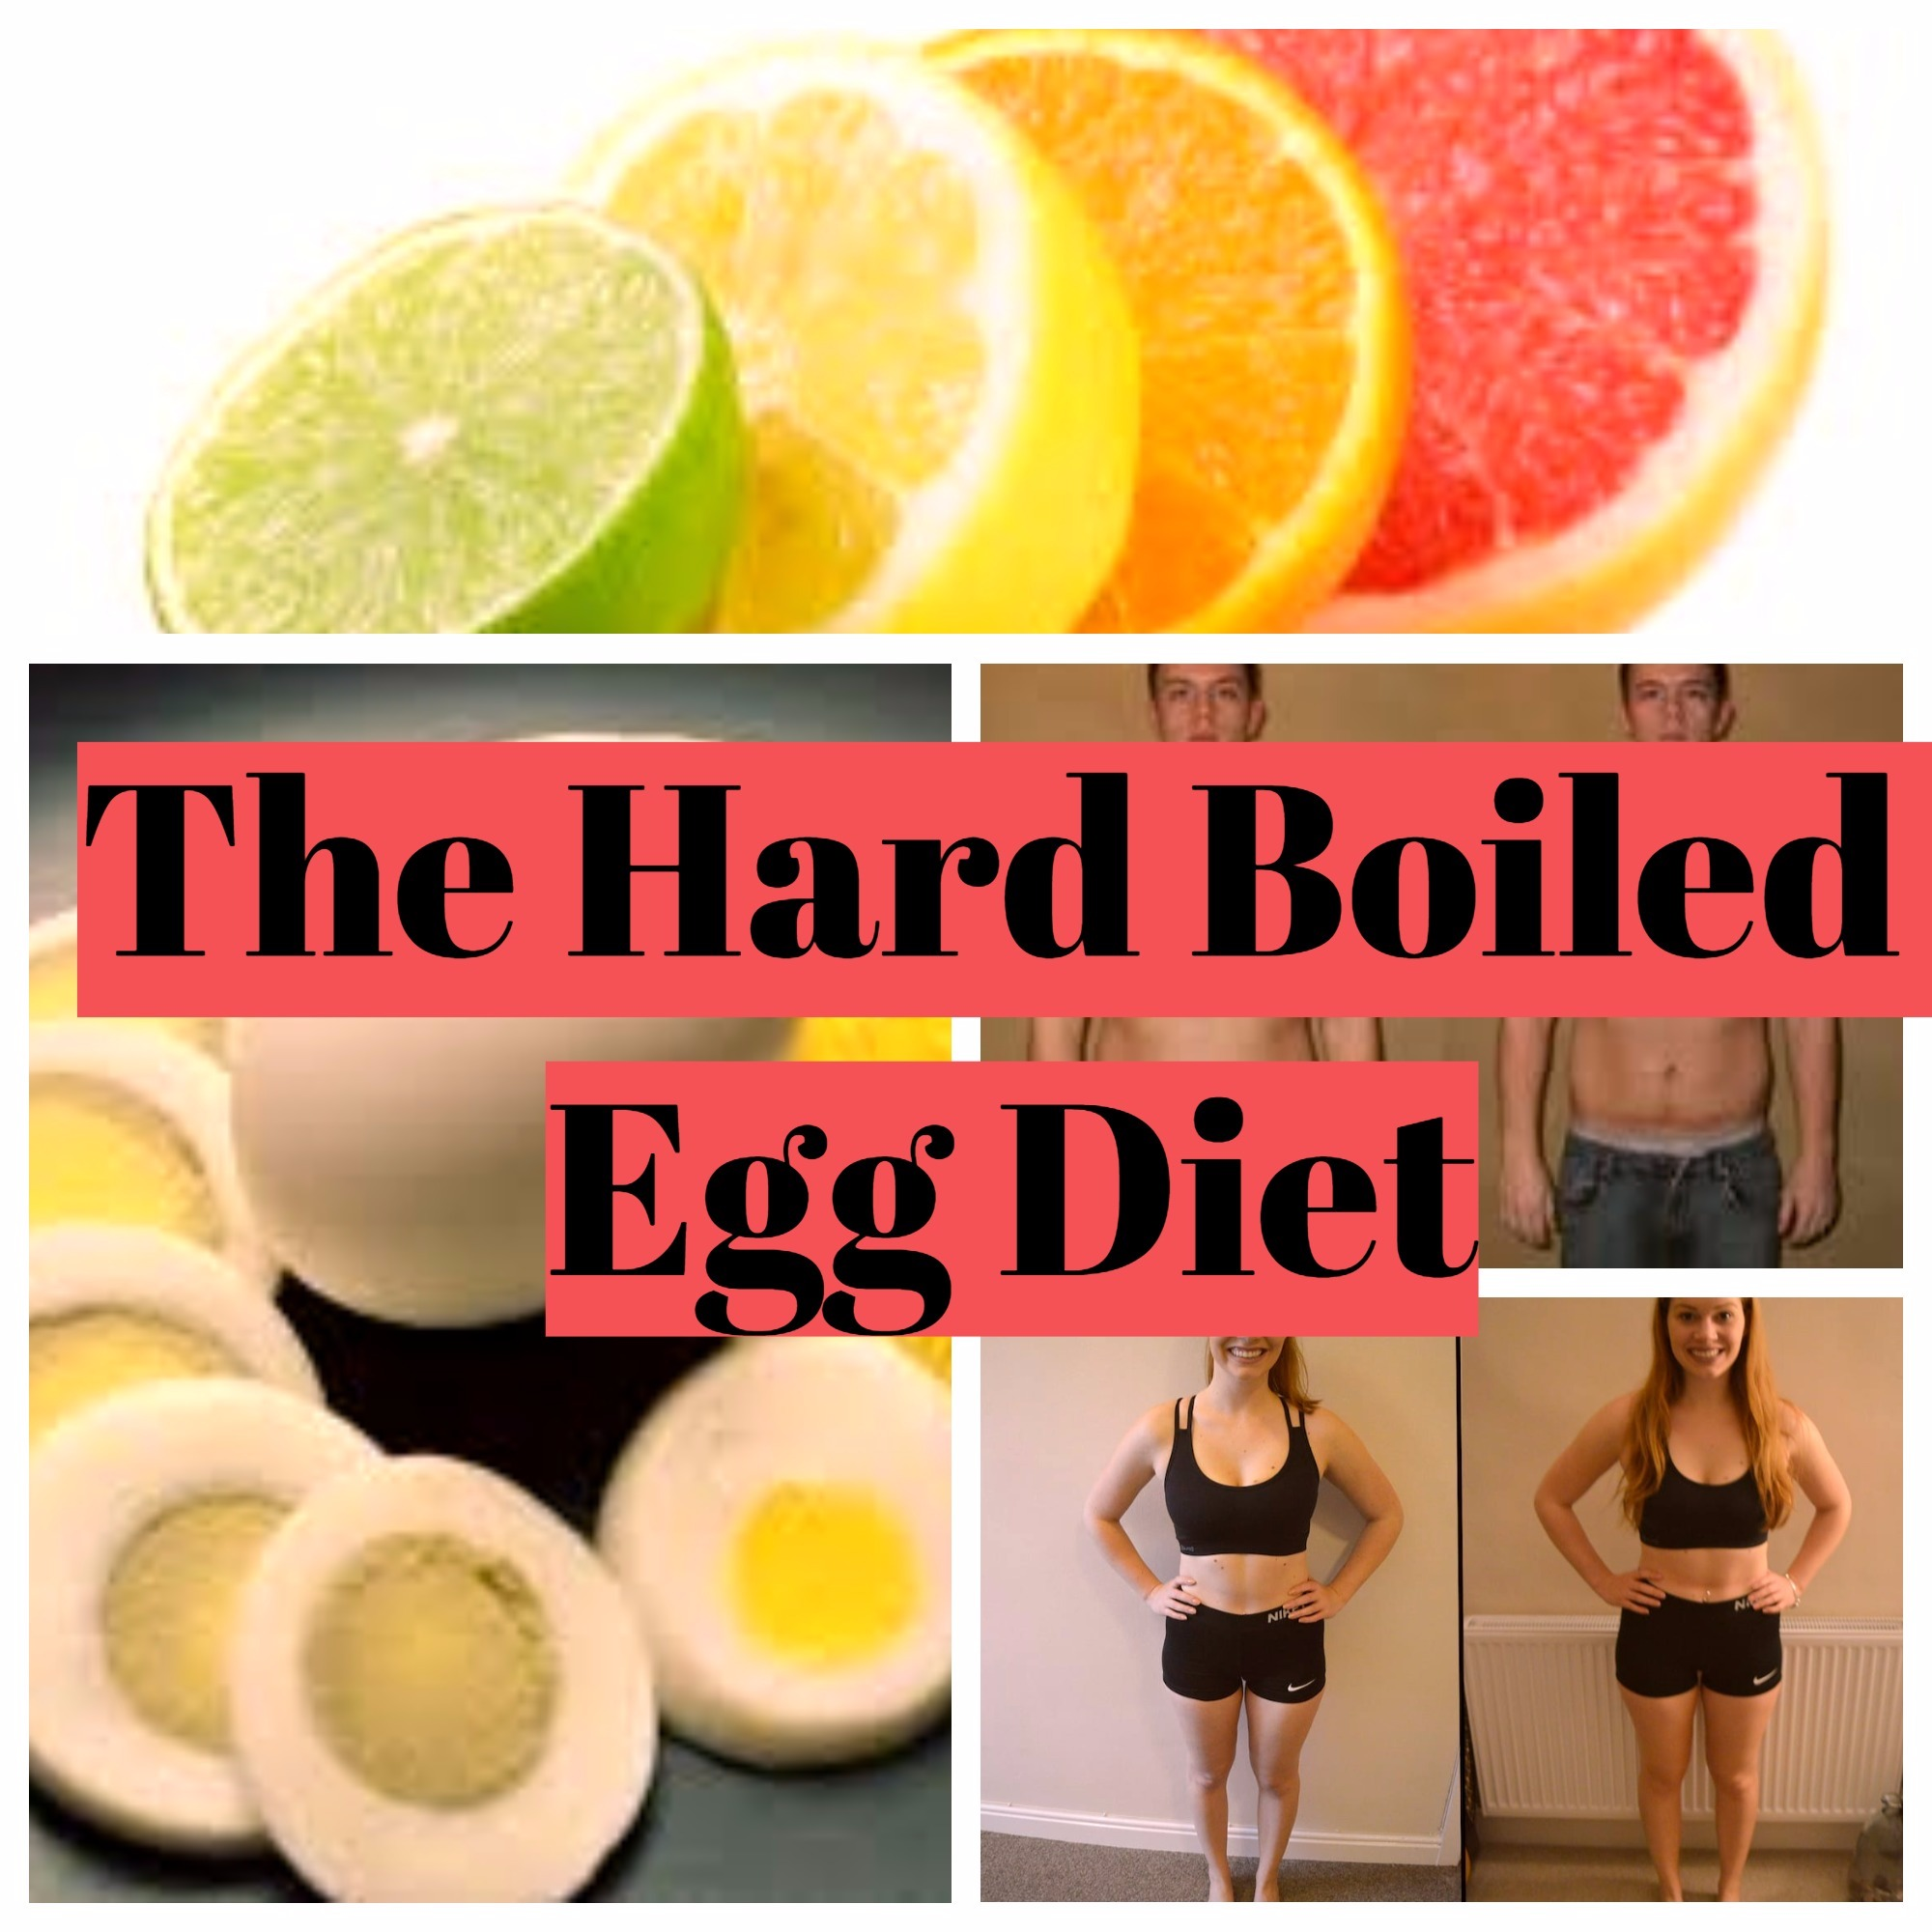 lll Hard Boiled egg Diet - Lose 24 pounds in just 14 days ...